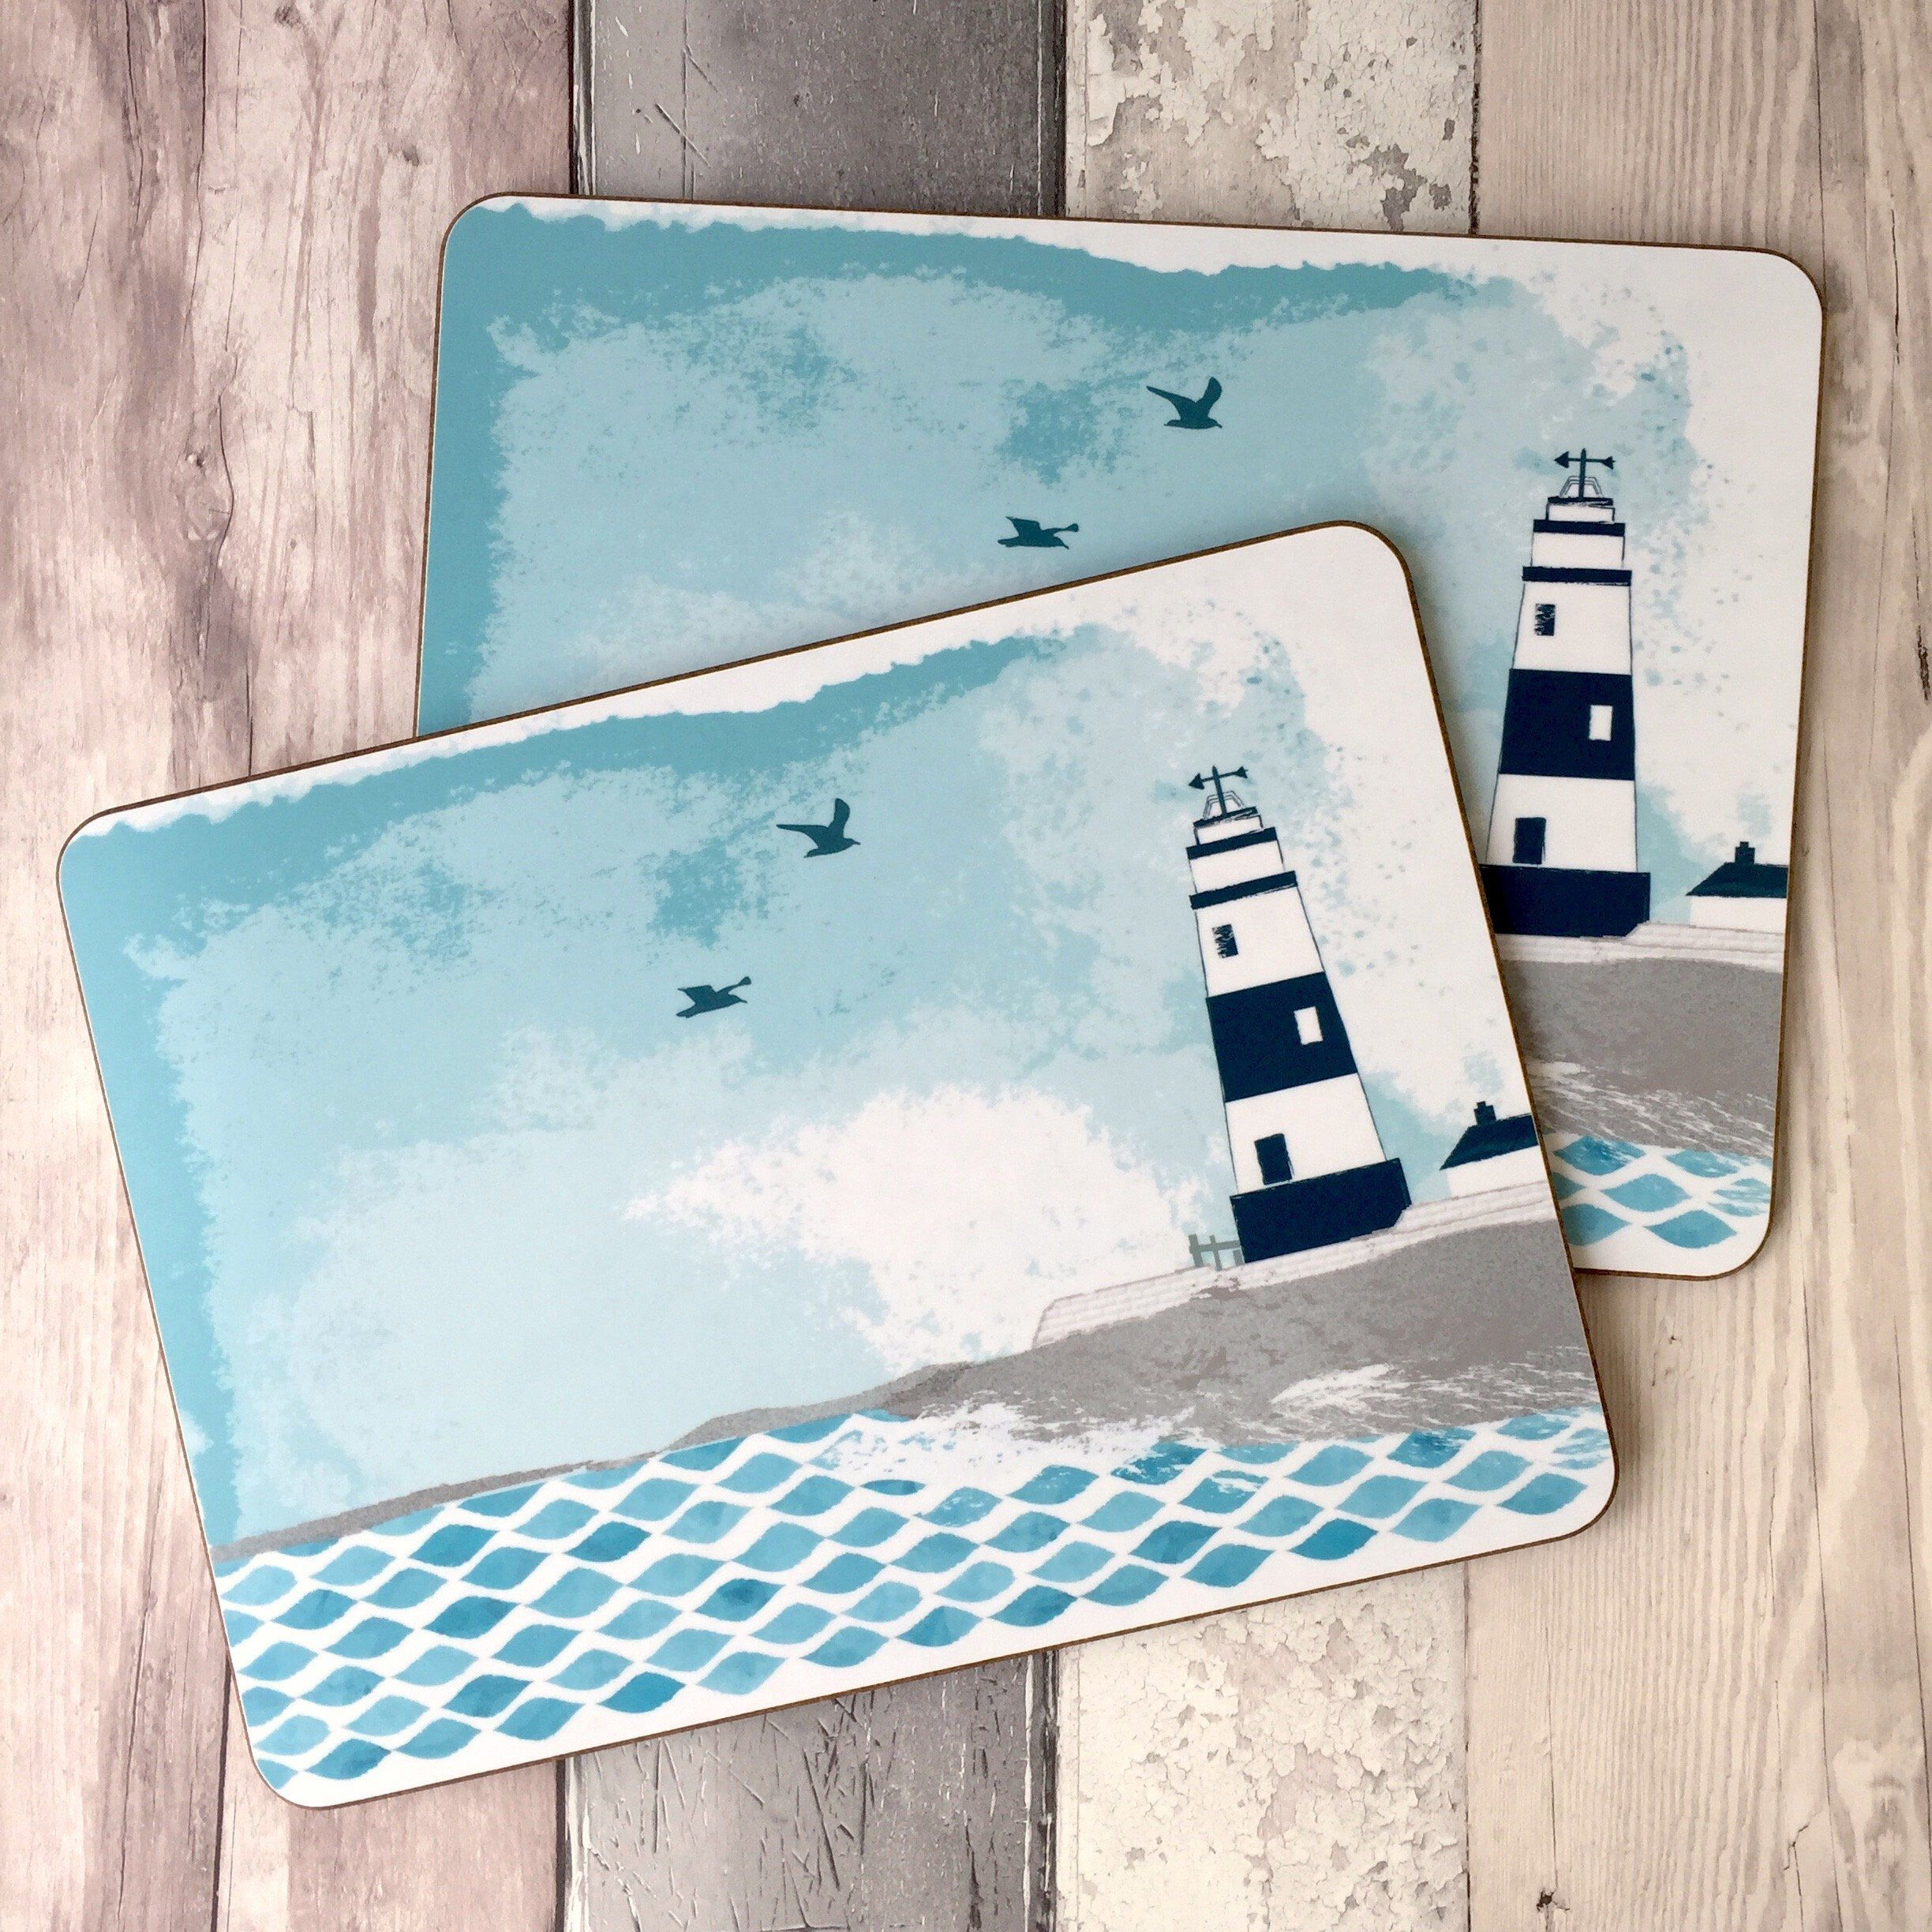 Lighthouse Gift Placemats Table Mats And Coasters Placemats Set Tablemats Coastal Kitchen Mat Tableware Gift F Lighthouse Gifts Lighthouse Art Placemats